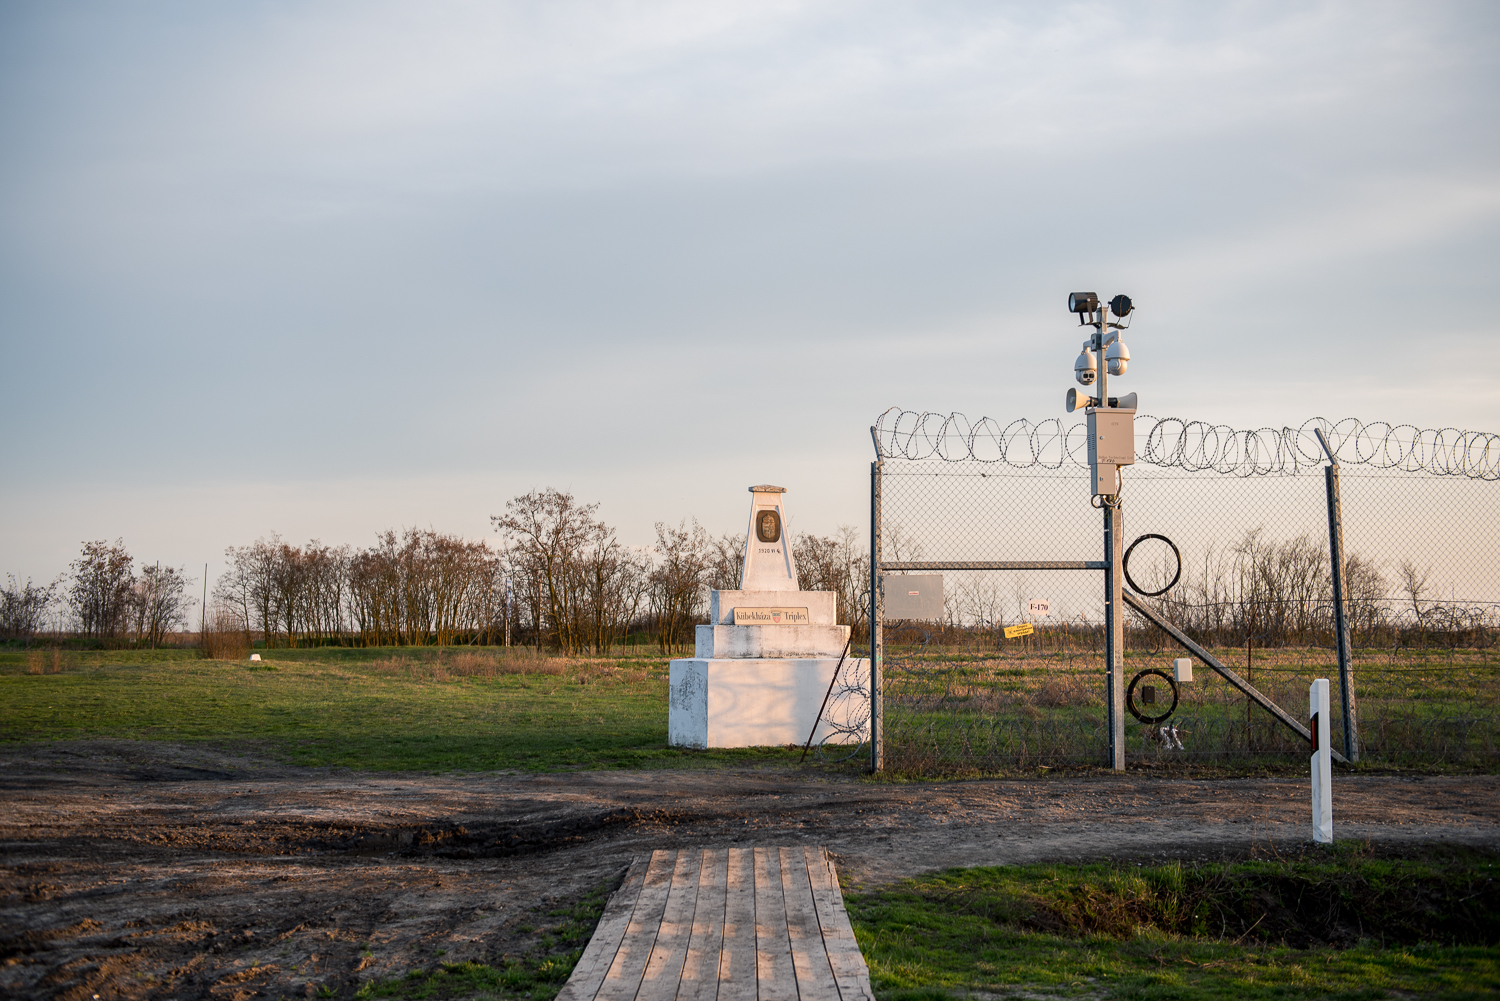 Trianon memorial at the end of the Hungarian border barrier near the triple border of Hungary, Serbia and Romania at Kübekháza, 30 March 2018.  The fence was constructed in the middle of the European migration crisis in 2015, with the aim to ensure border security by preventing immigrants from entering the country and the European Union illegally.